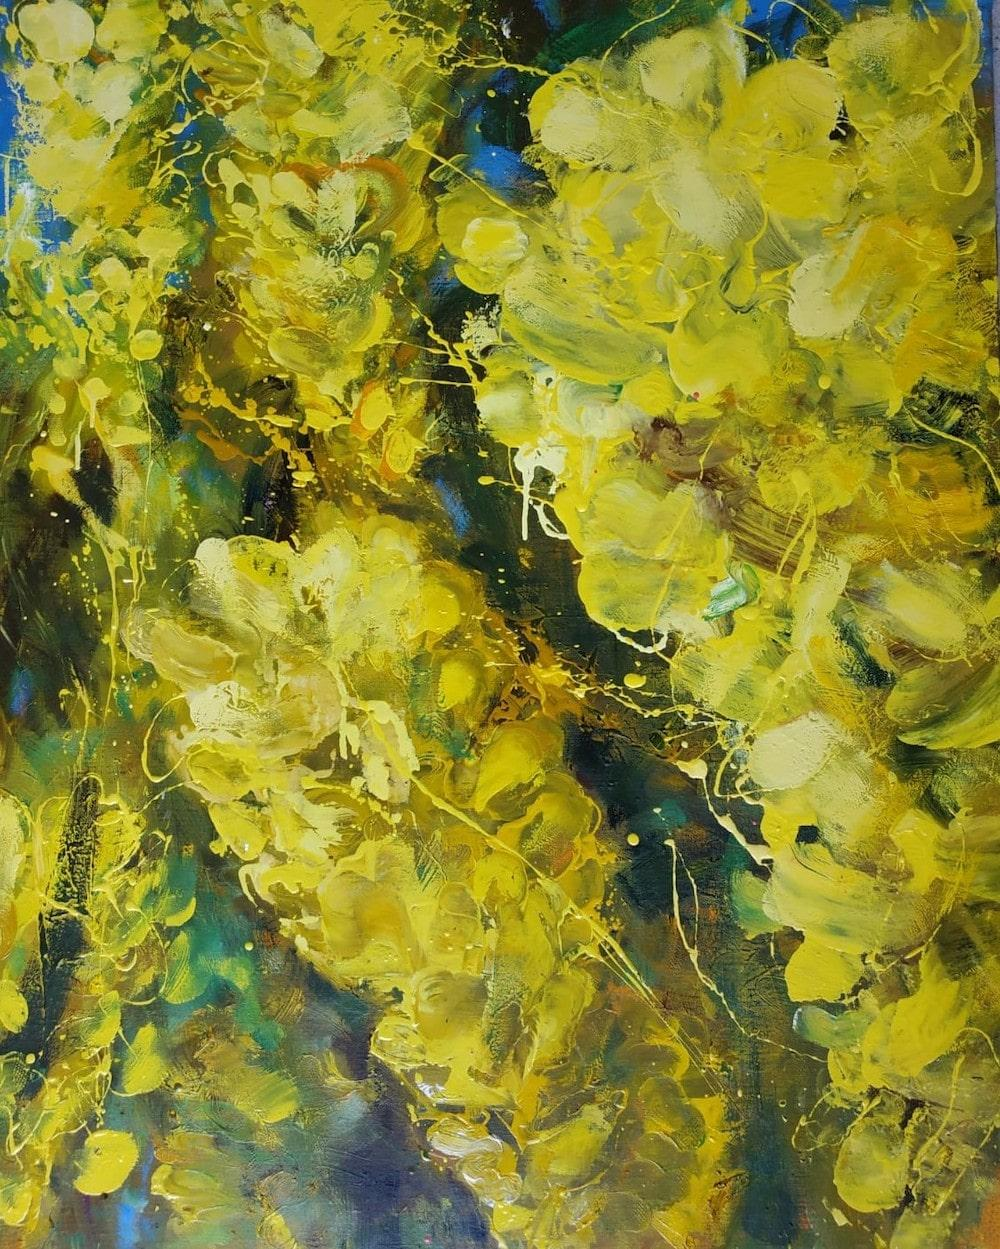 Laburnum by Christophe Dupety - Contemporary painting, Flora, Yellow